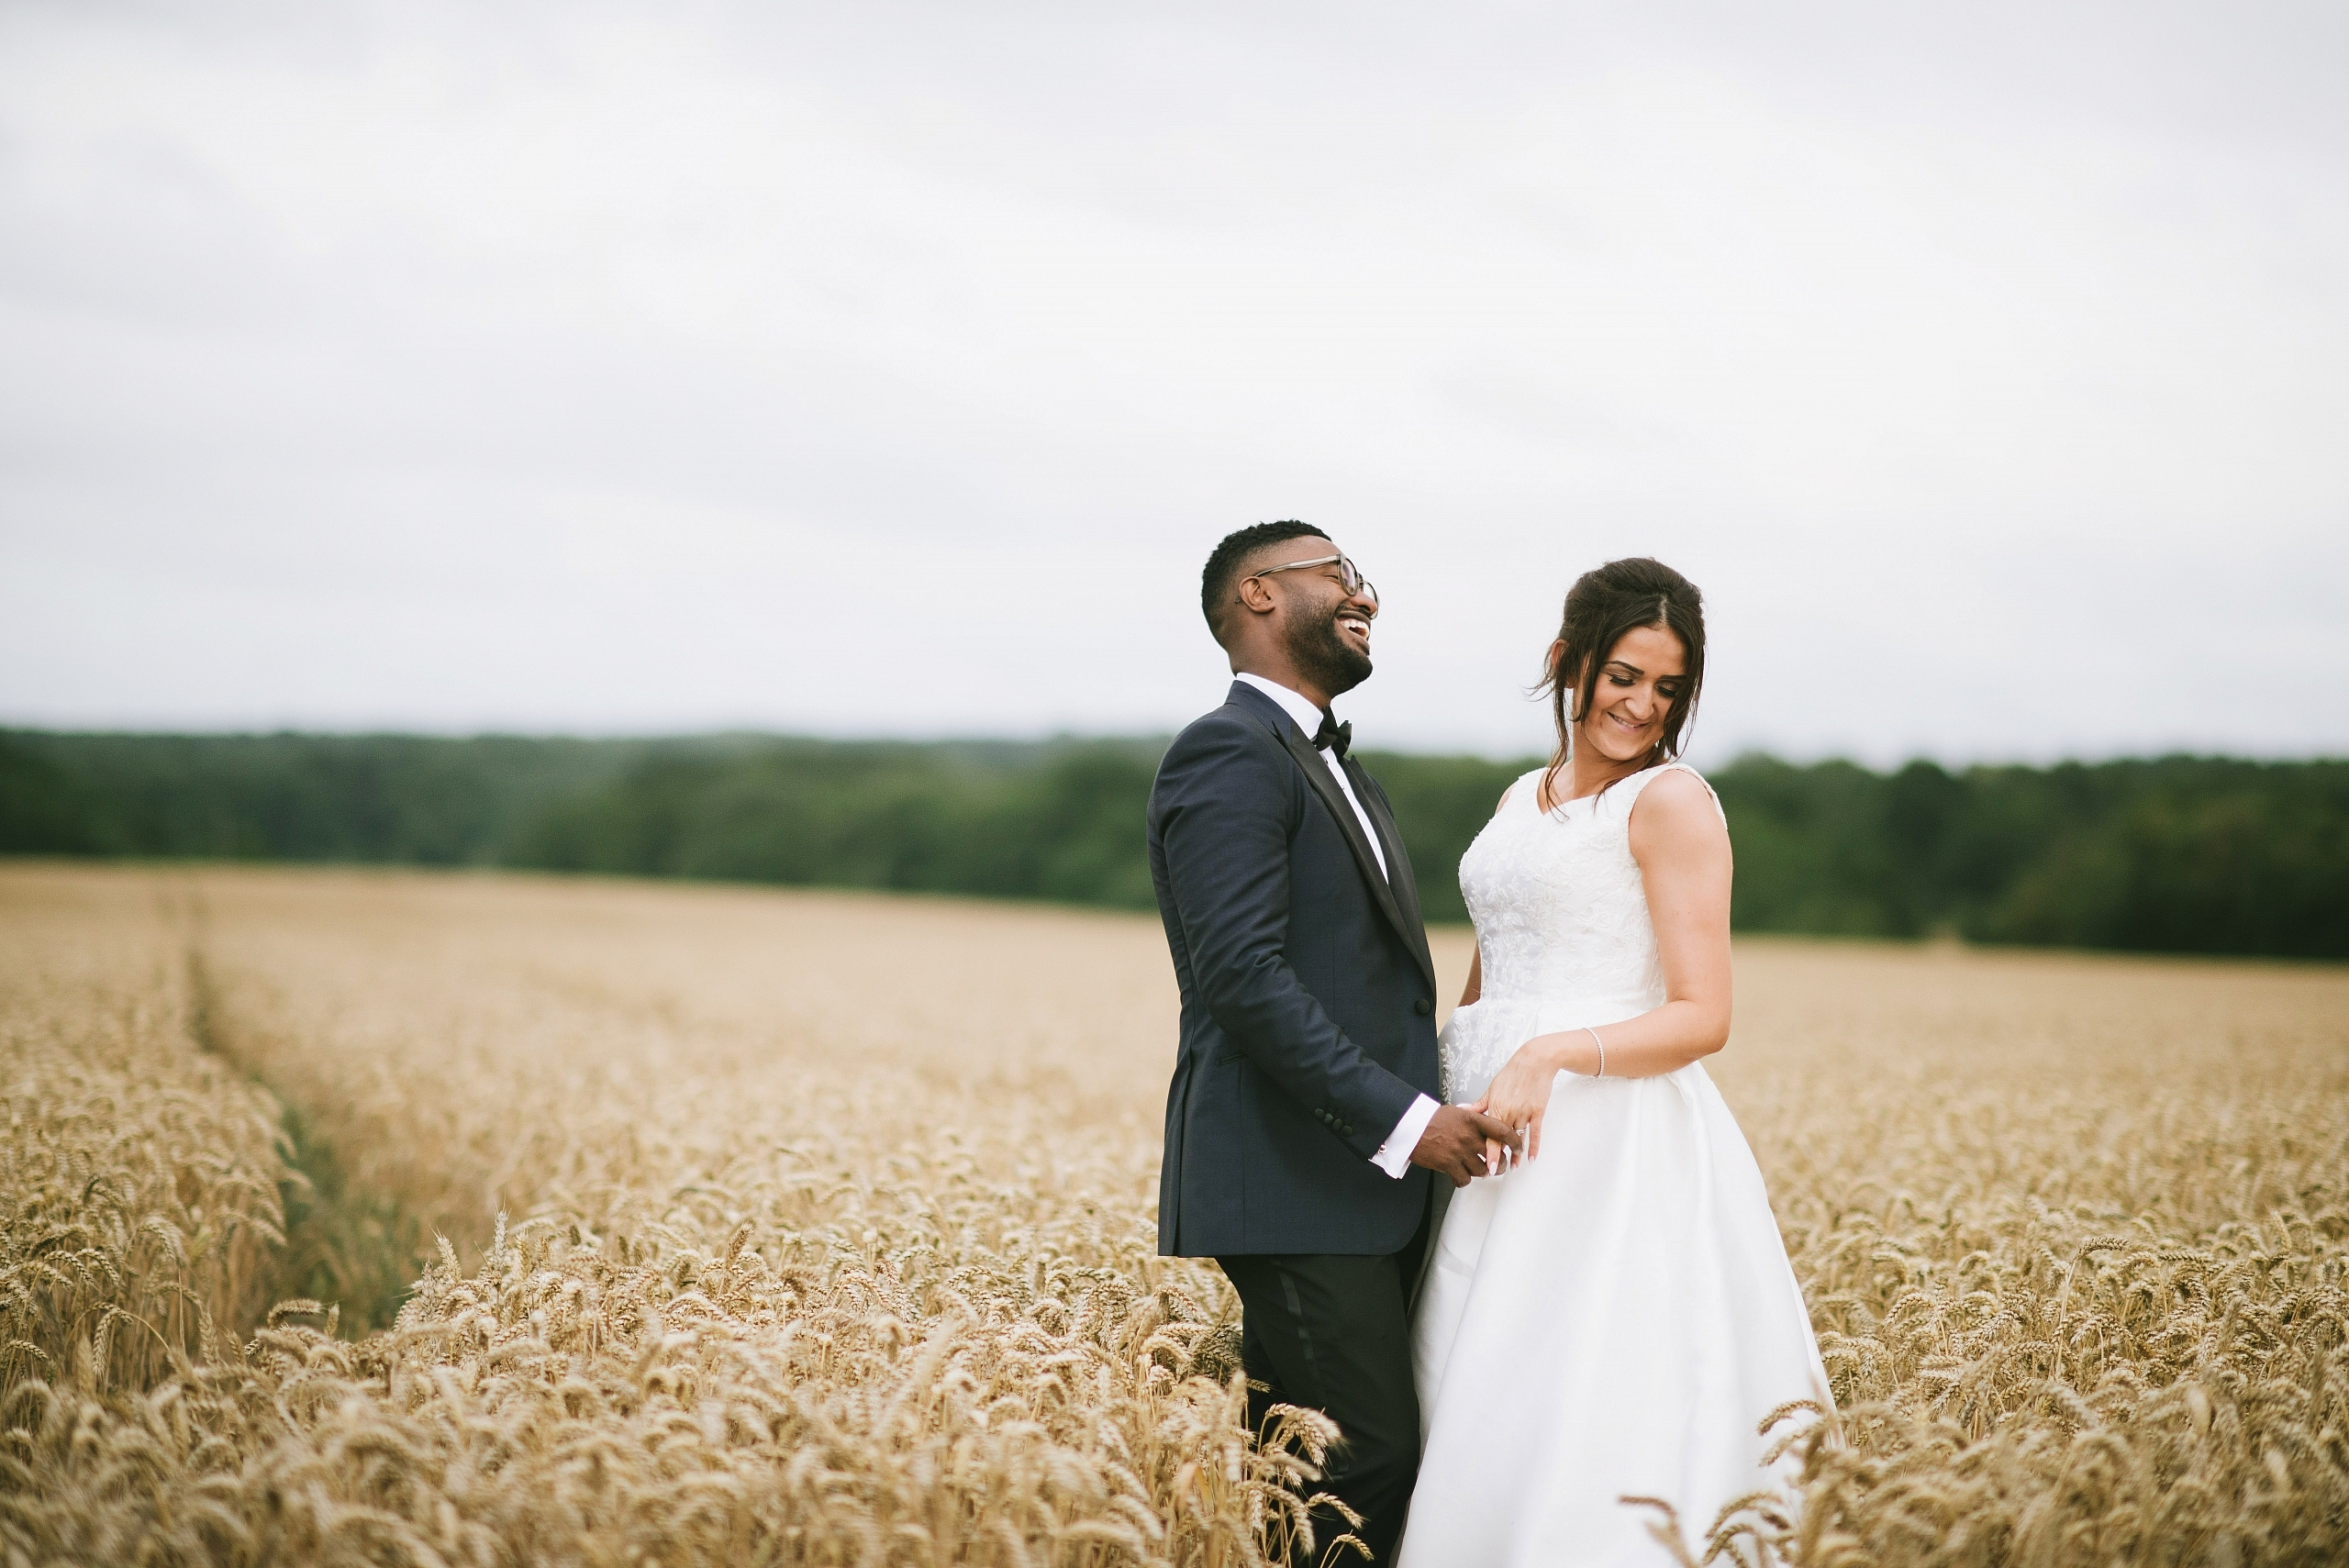 Married couple in field